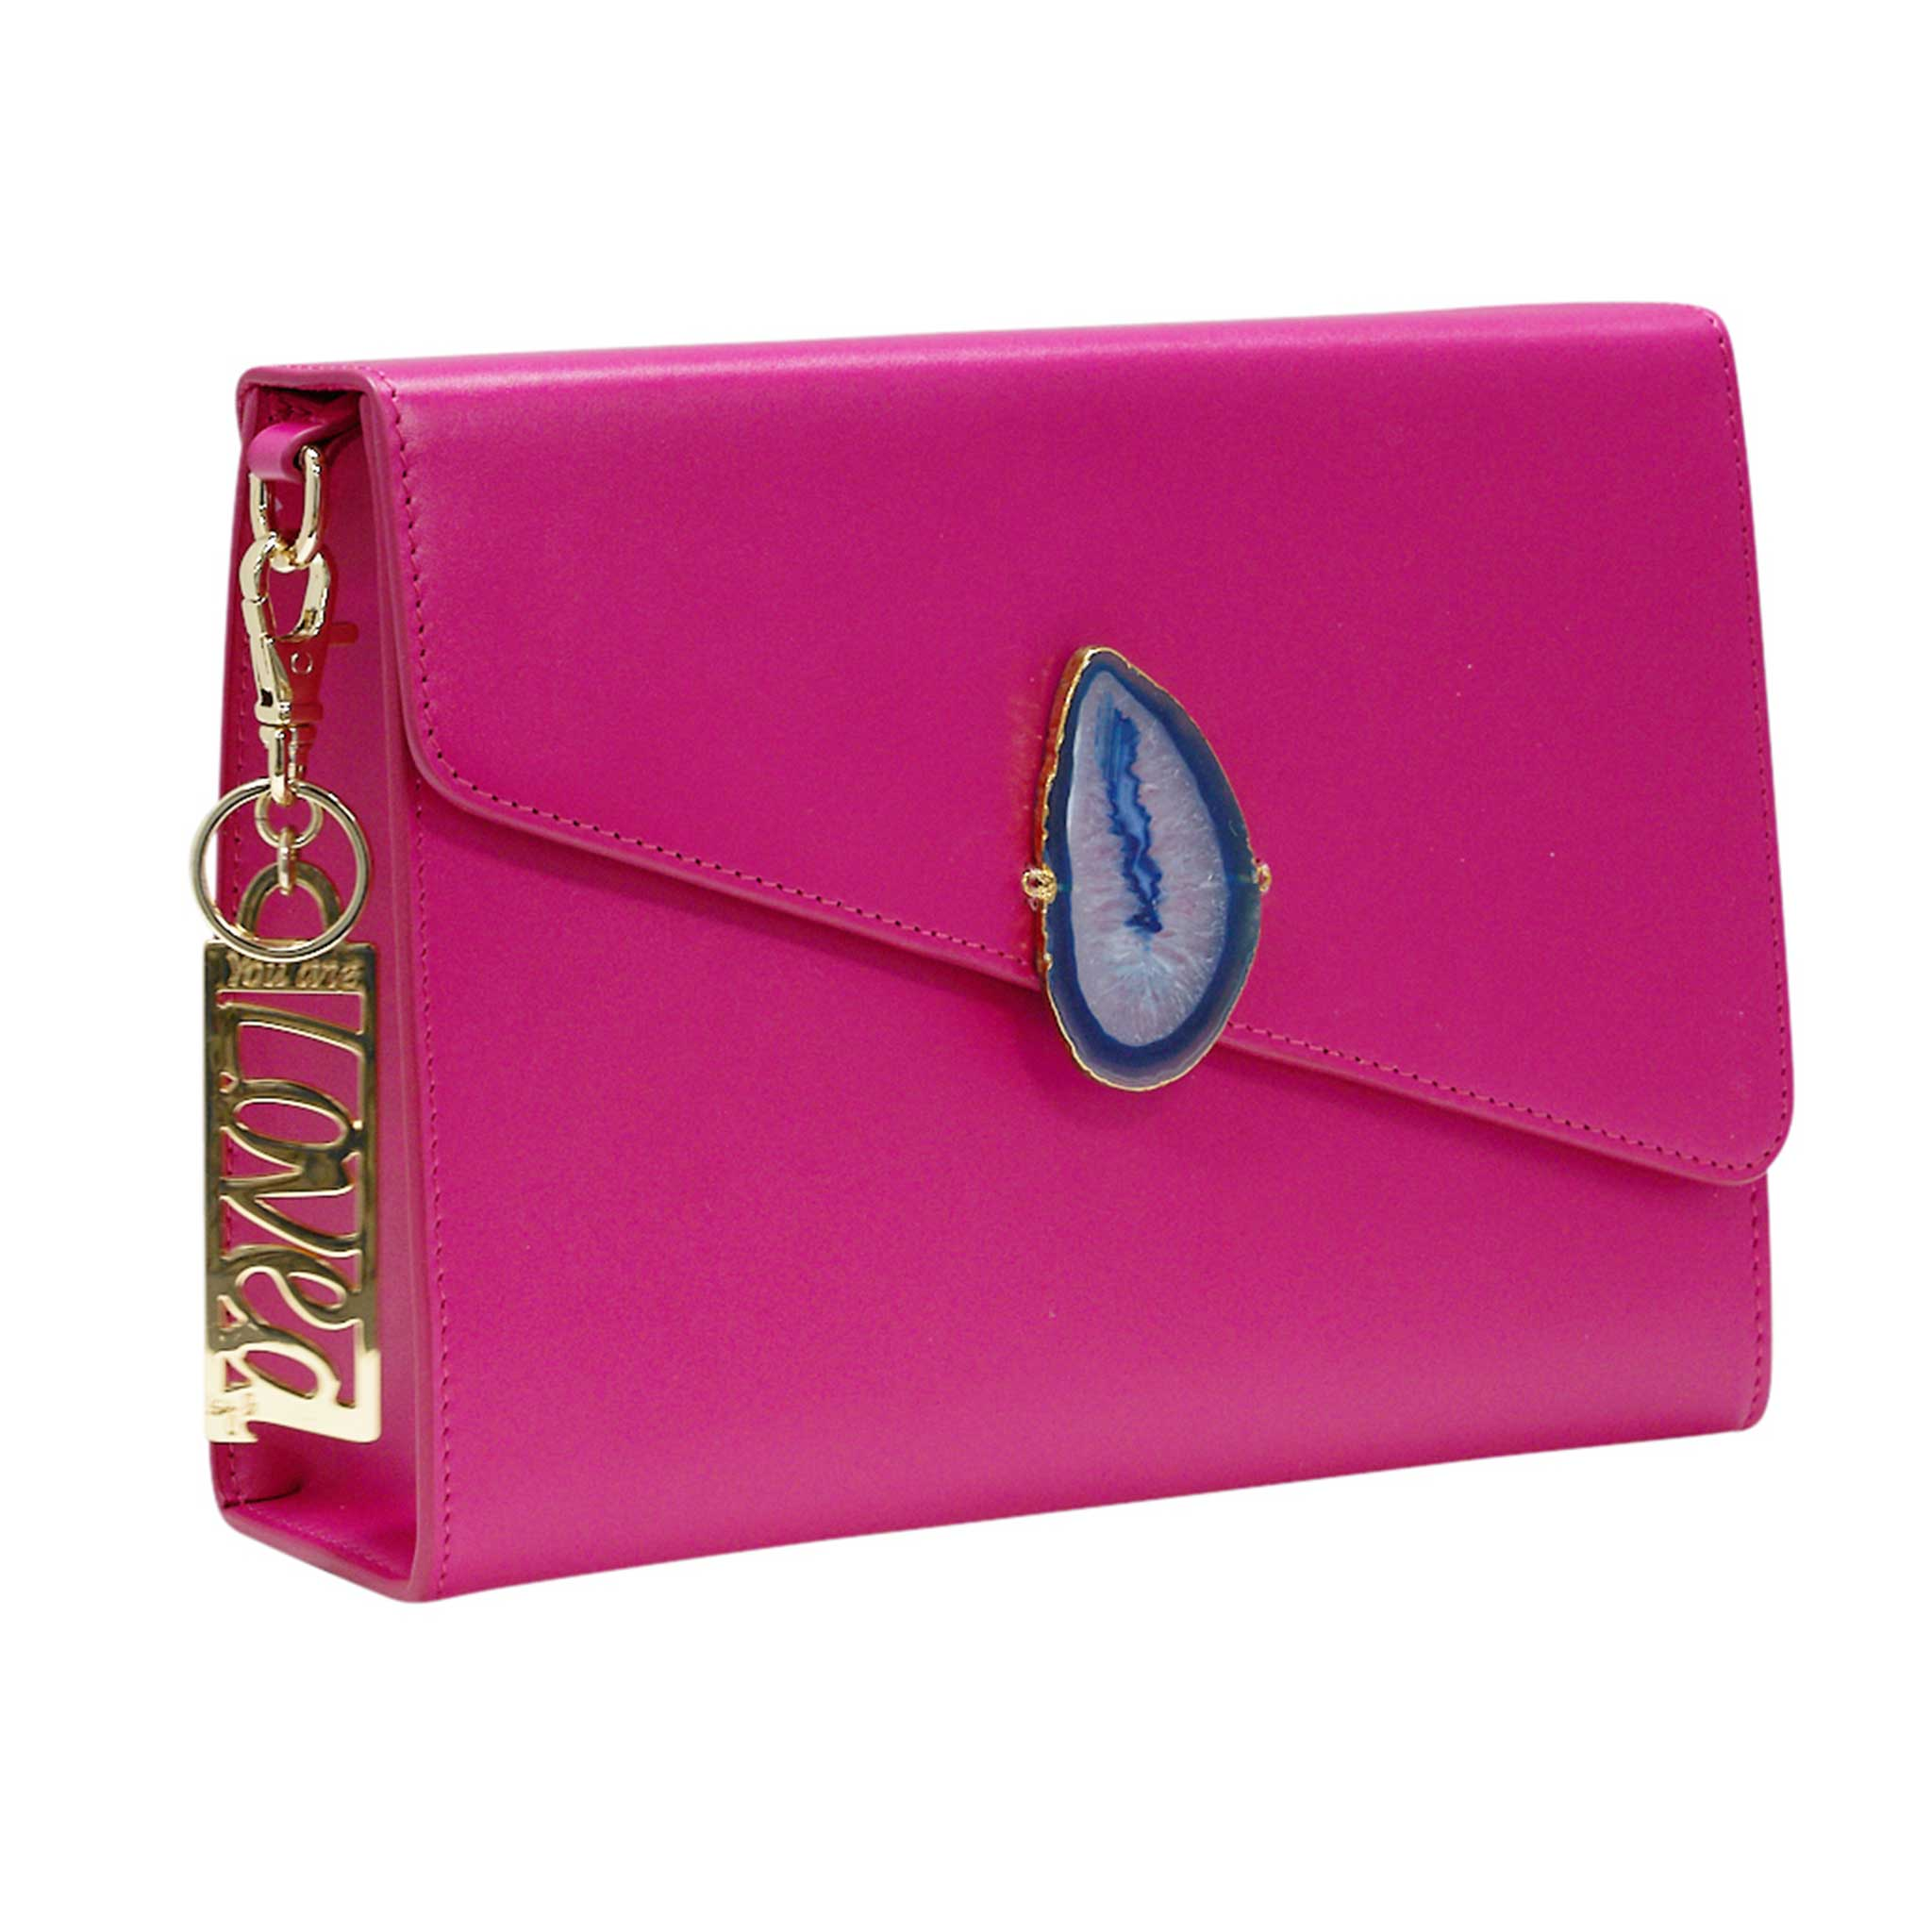 LOVED BAG - PINK RUBY LEATHER WITH BLUE AGATE - 1.01.002.026